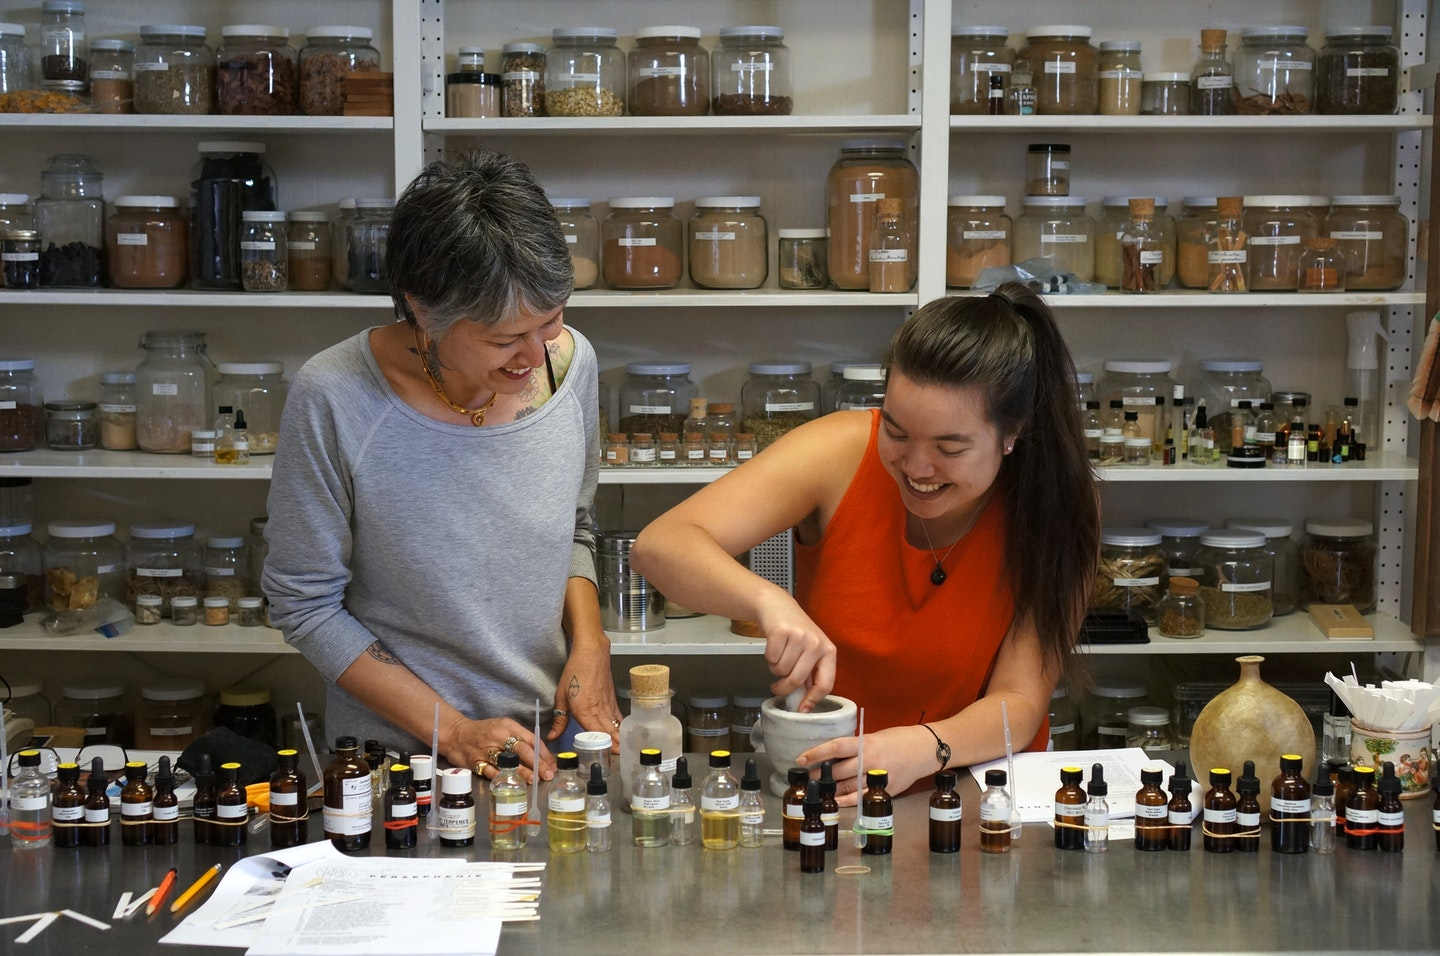 """Introduction to the world of natural perfume-making  Ever wondered how to make a natural perfume? We did too, and we're telling our story on the blog: How we learned natural perfume making from Persephenie Los Angeles based master.  #vawaa #art #artist #perfume #fragrance #creativevacation #losangeles #learn #makers"""